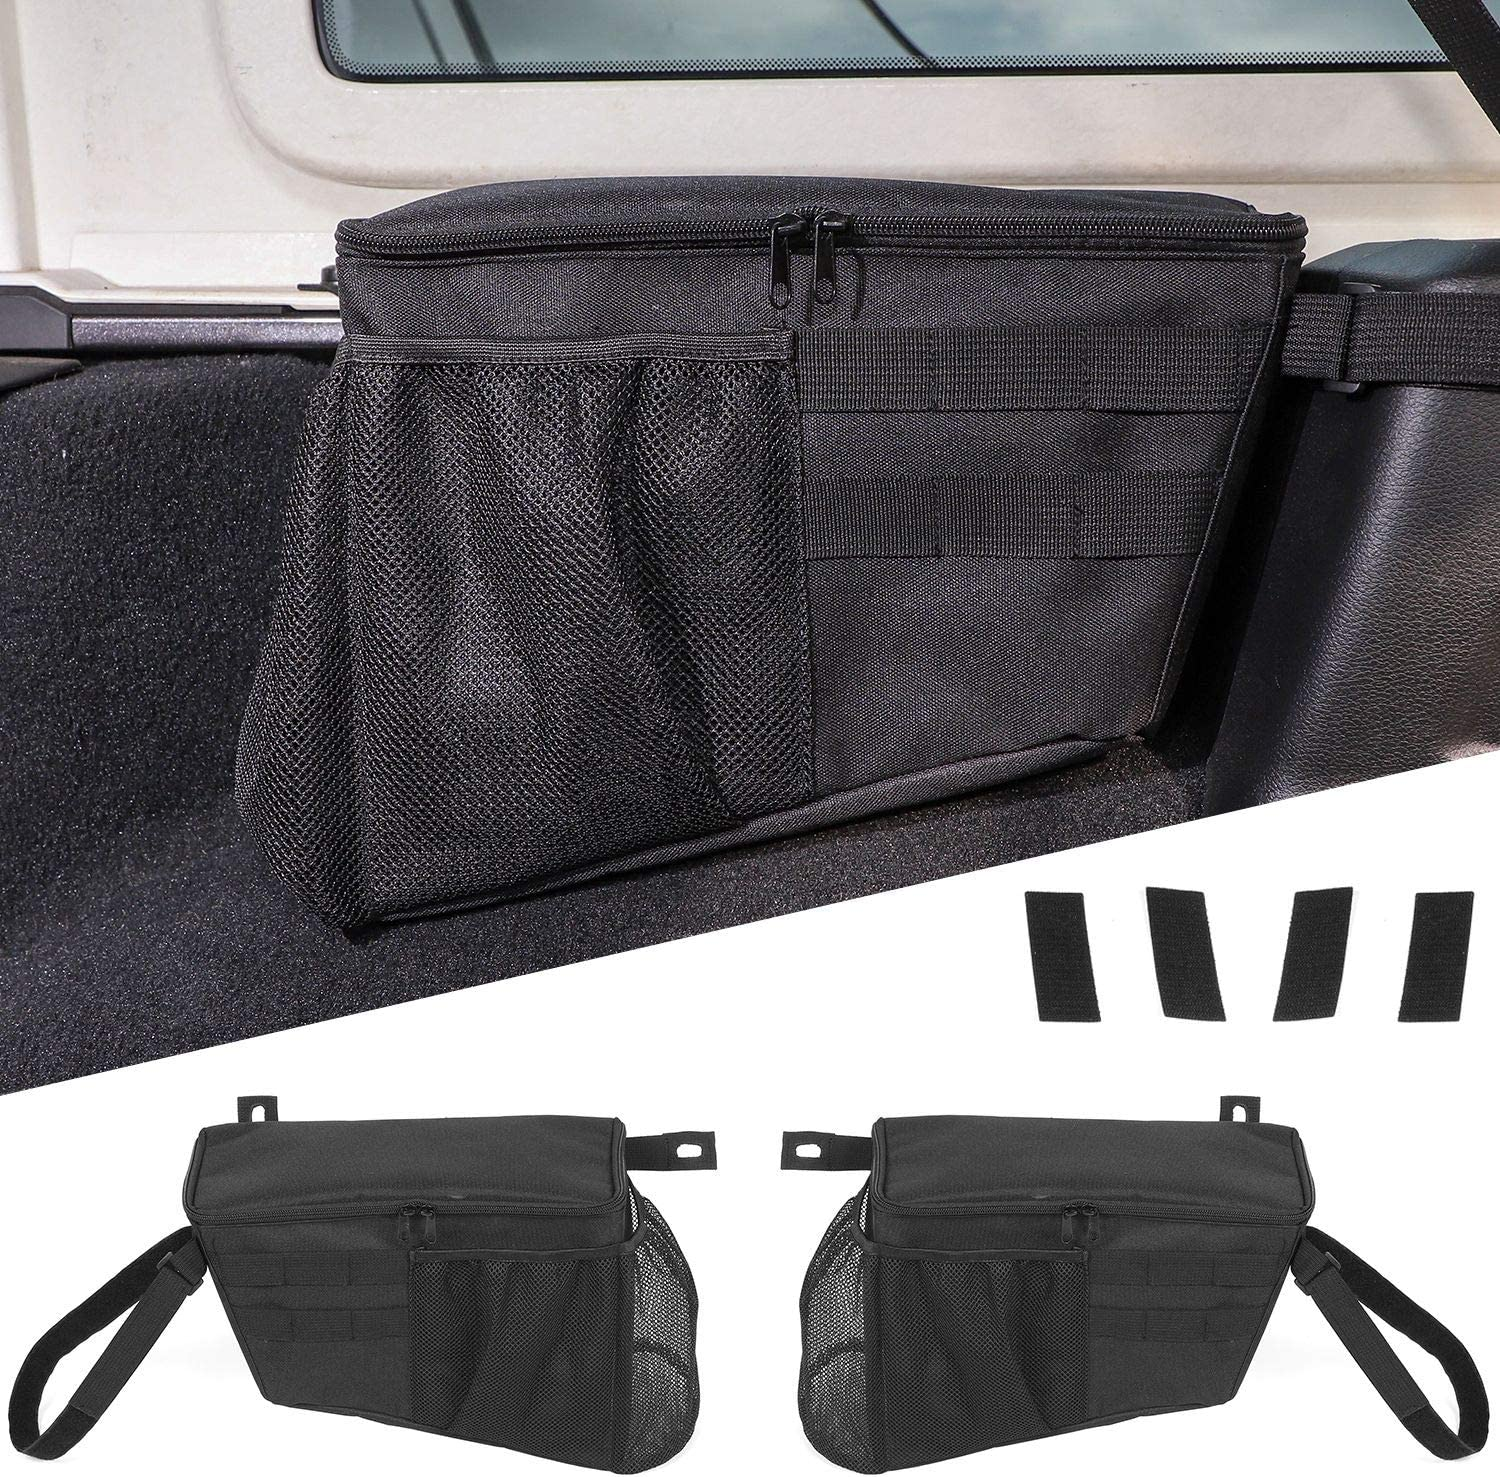 Car Trunk Organizer Cargo Side Bag 2018-2 Storage Spring Branded goods new work one after another for